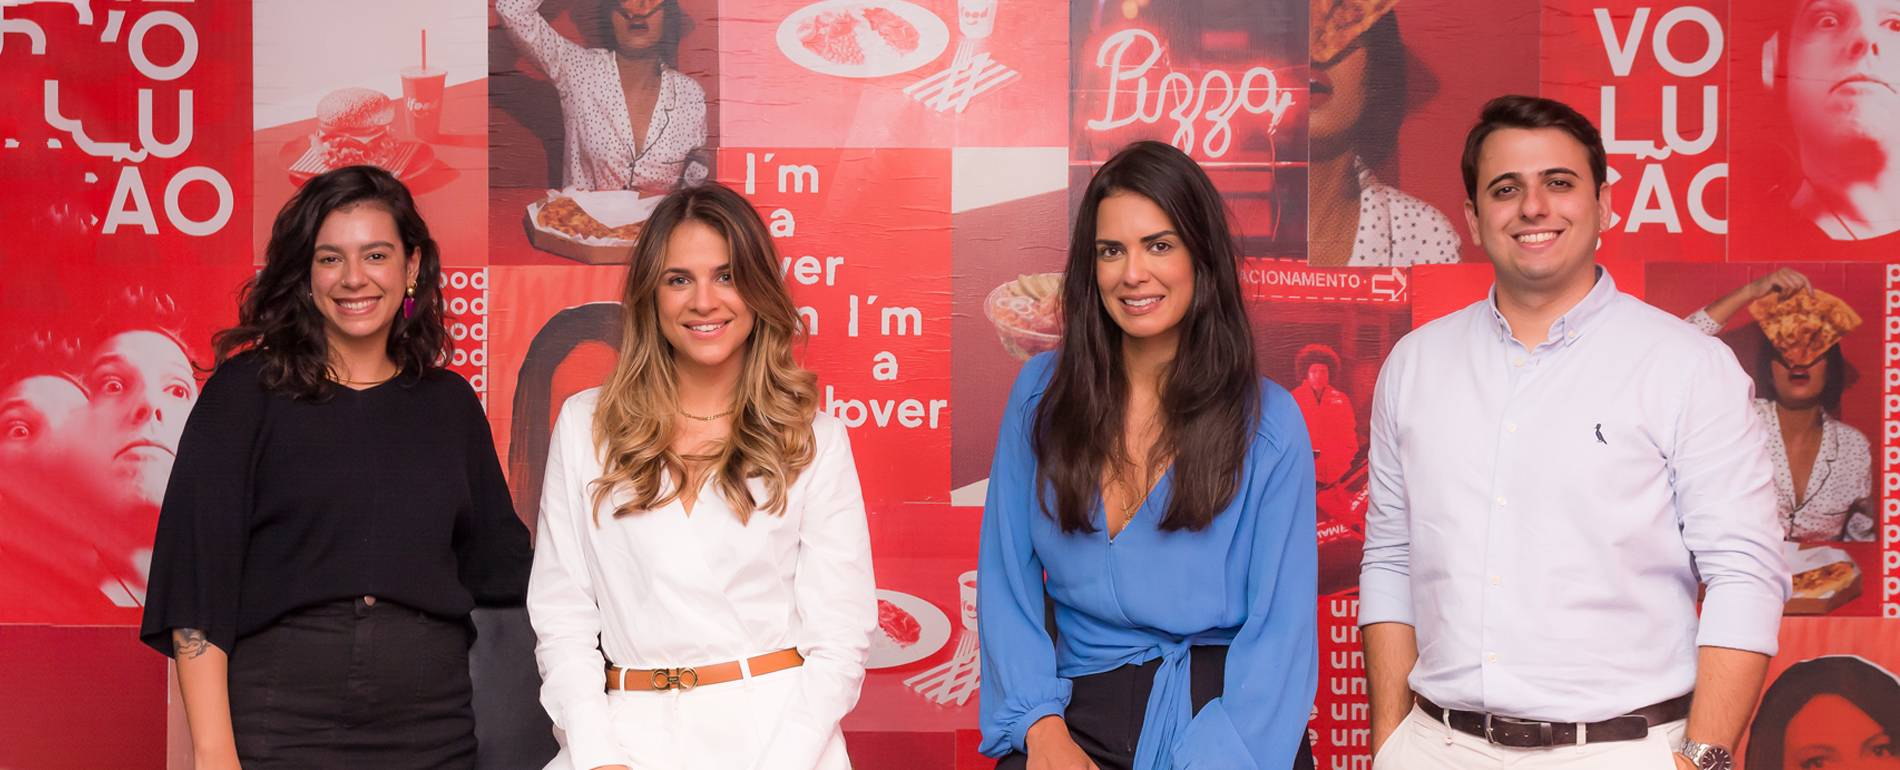 How iFood Hit Over 150 Million Reais In iFood Card Sales in 2020